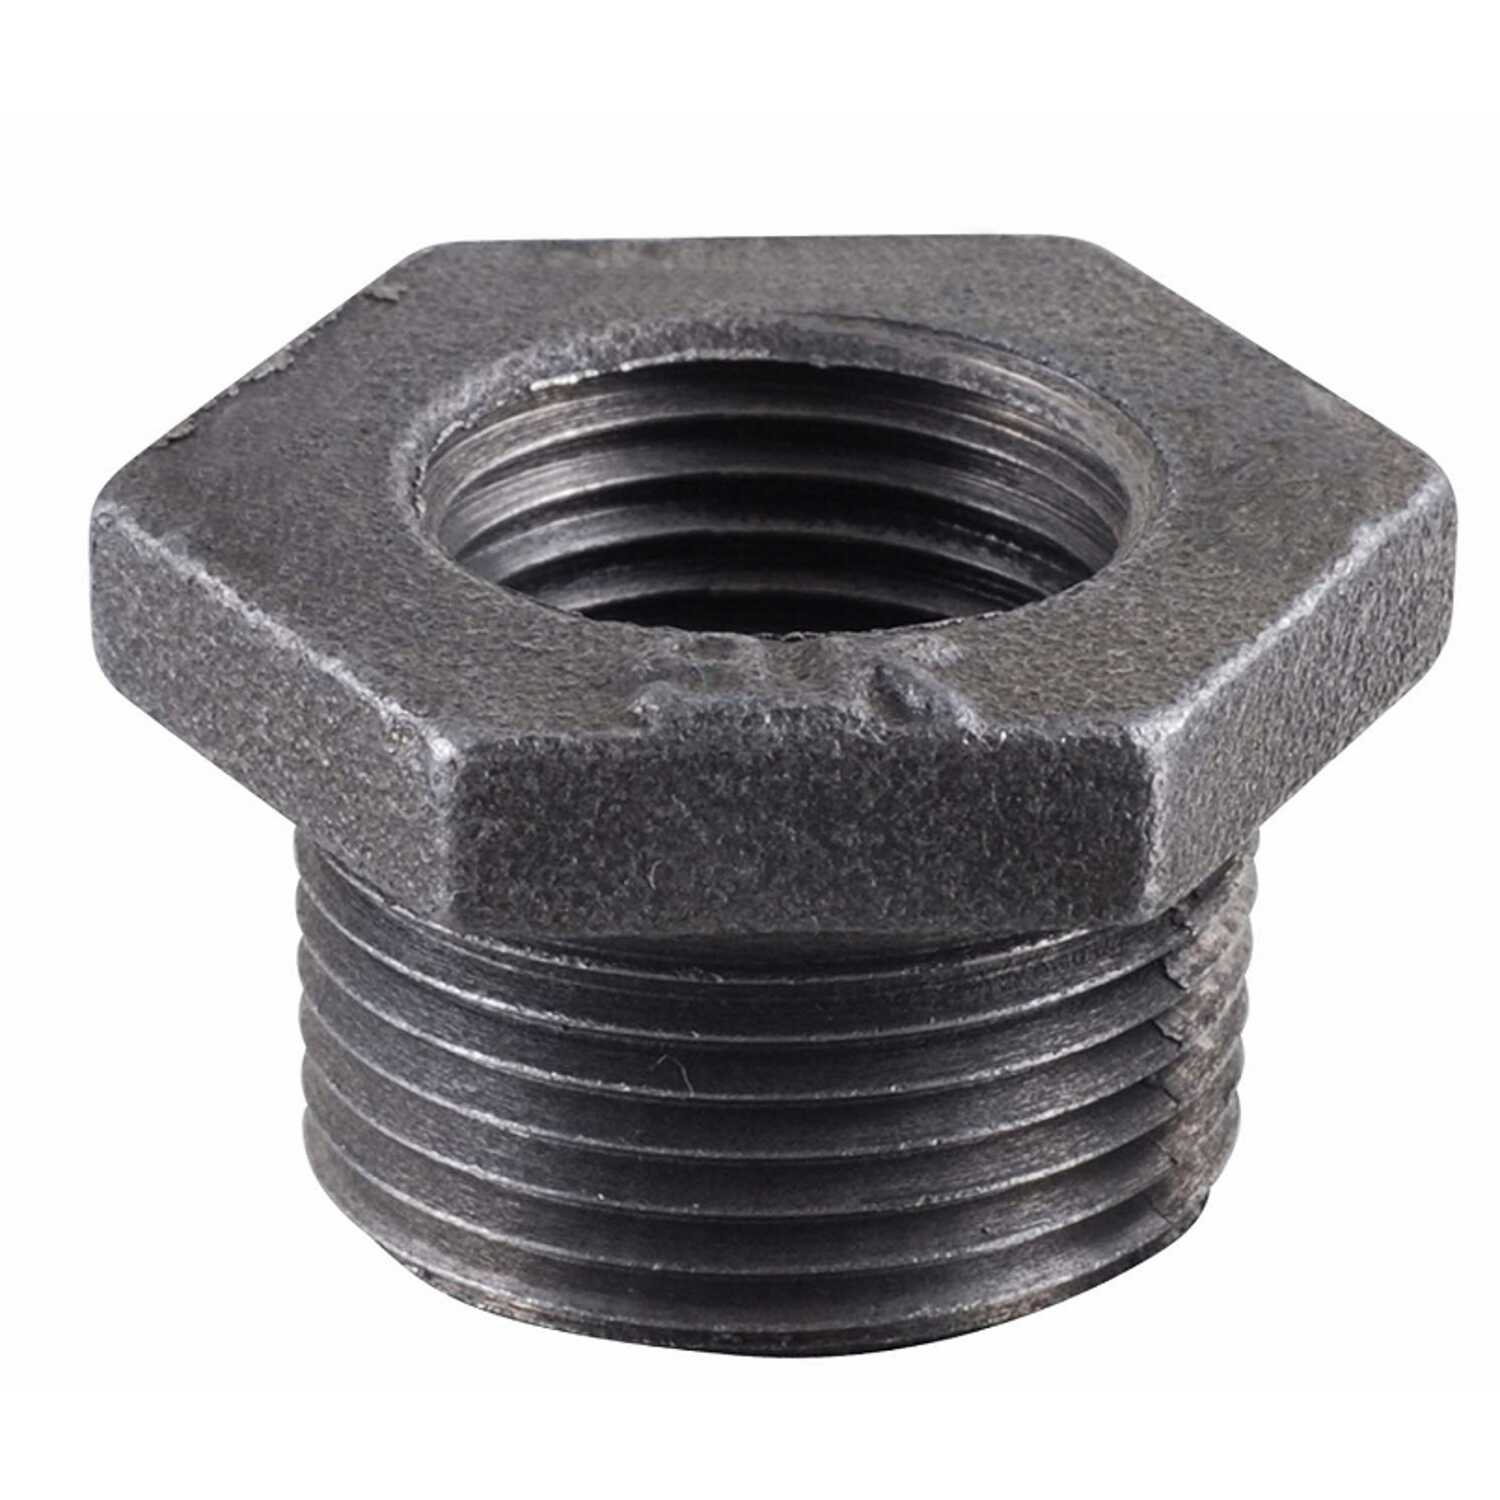 B & K  1/2 in. MPT   x 1-1/2 in. Dia. FPT  Black  Malleable Iron  Hex Bushing